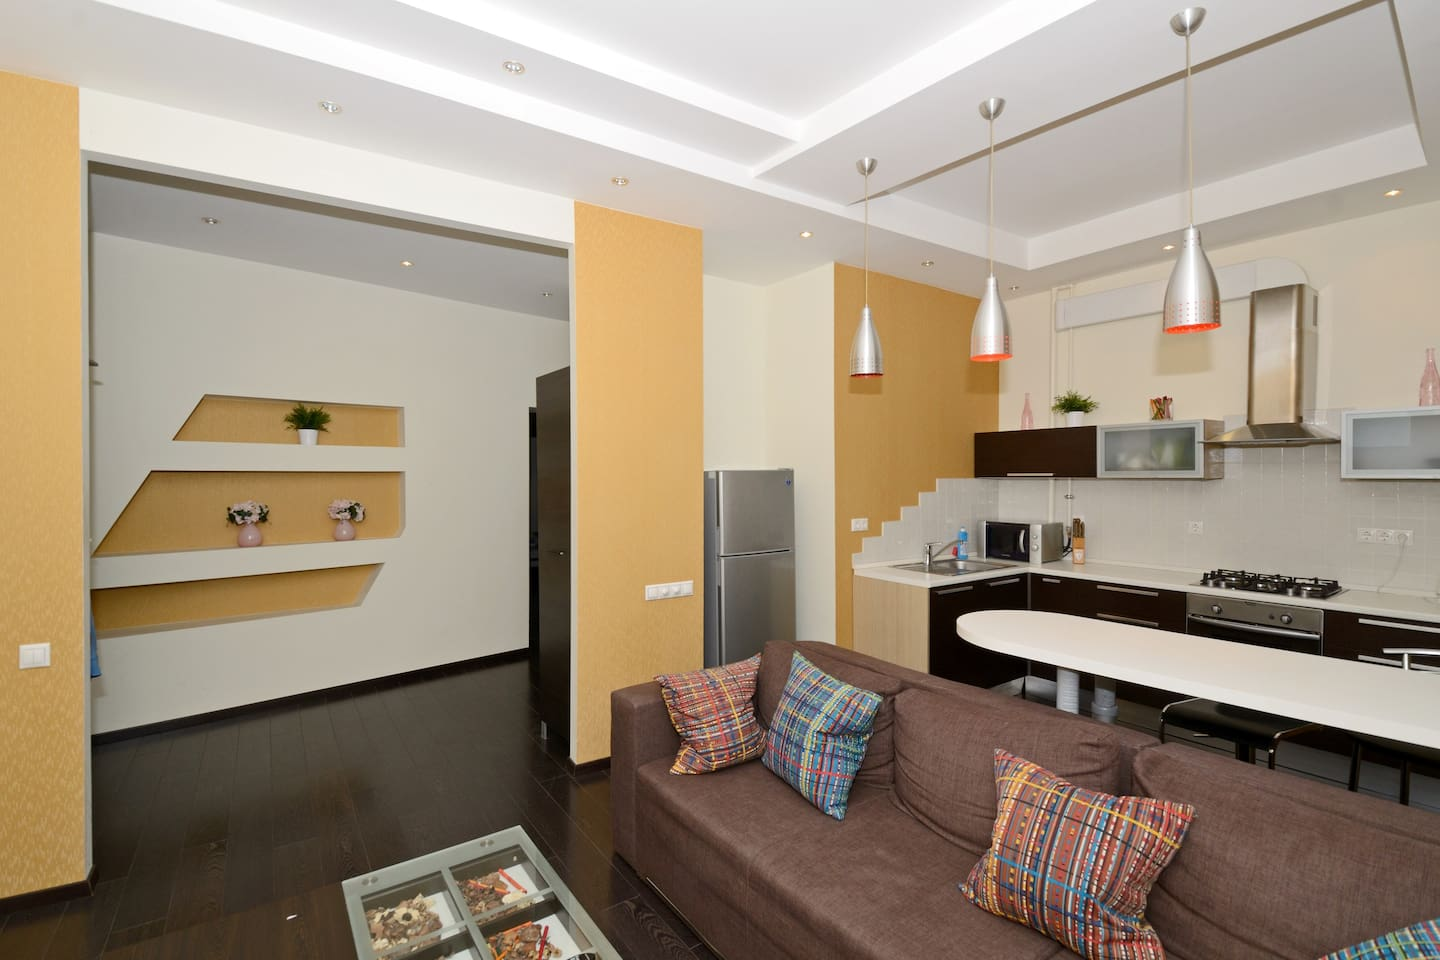 This apartment is situated in the very centre- on famous Khreshchatyk street, right on Independence Square. Very close to all tourist attractions, restaurantes and boutiques.